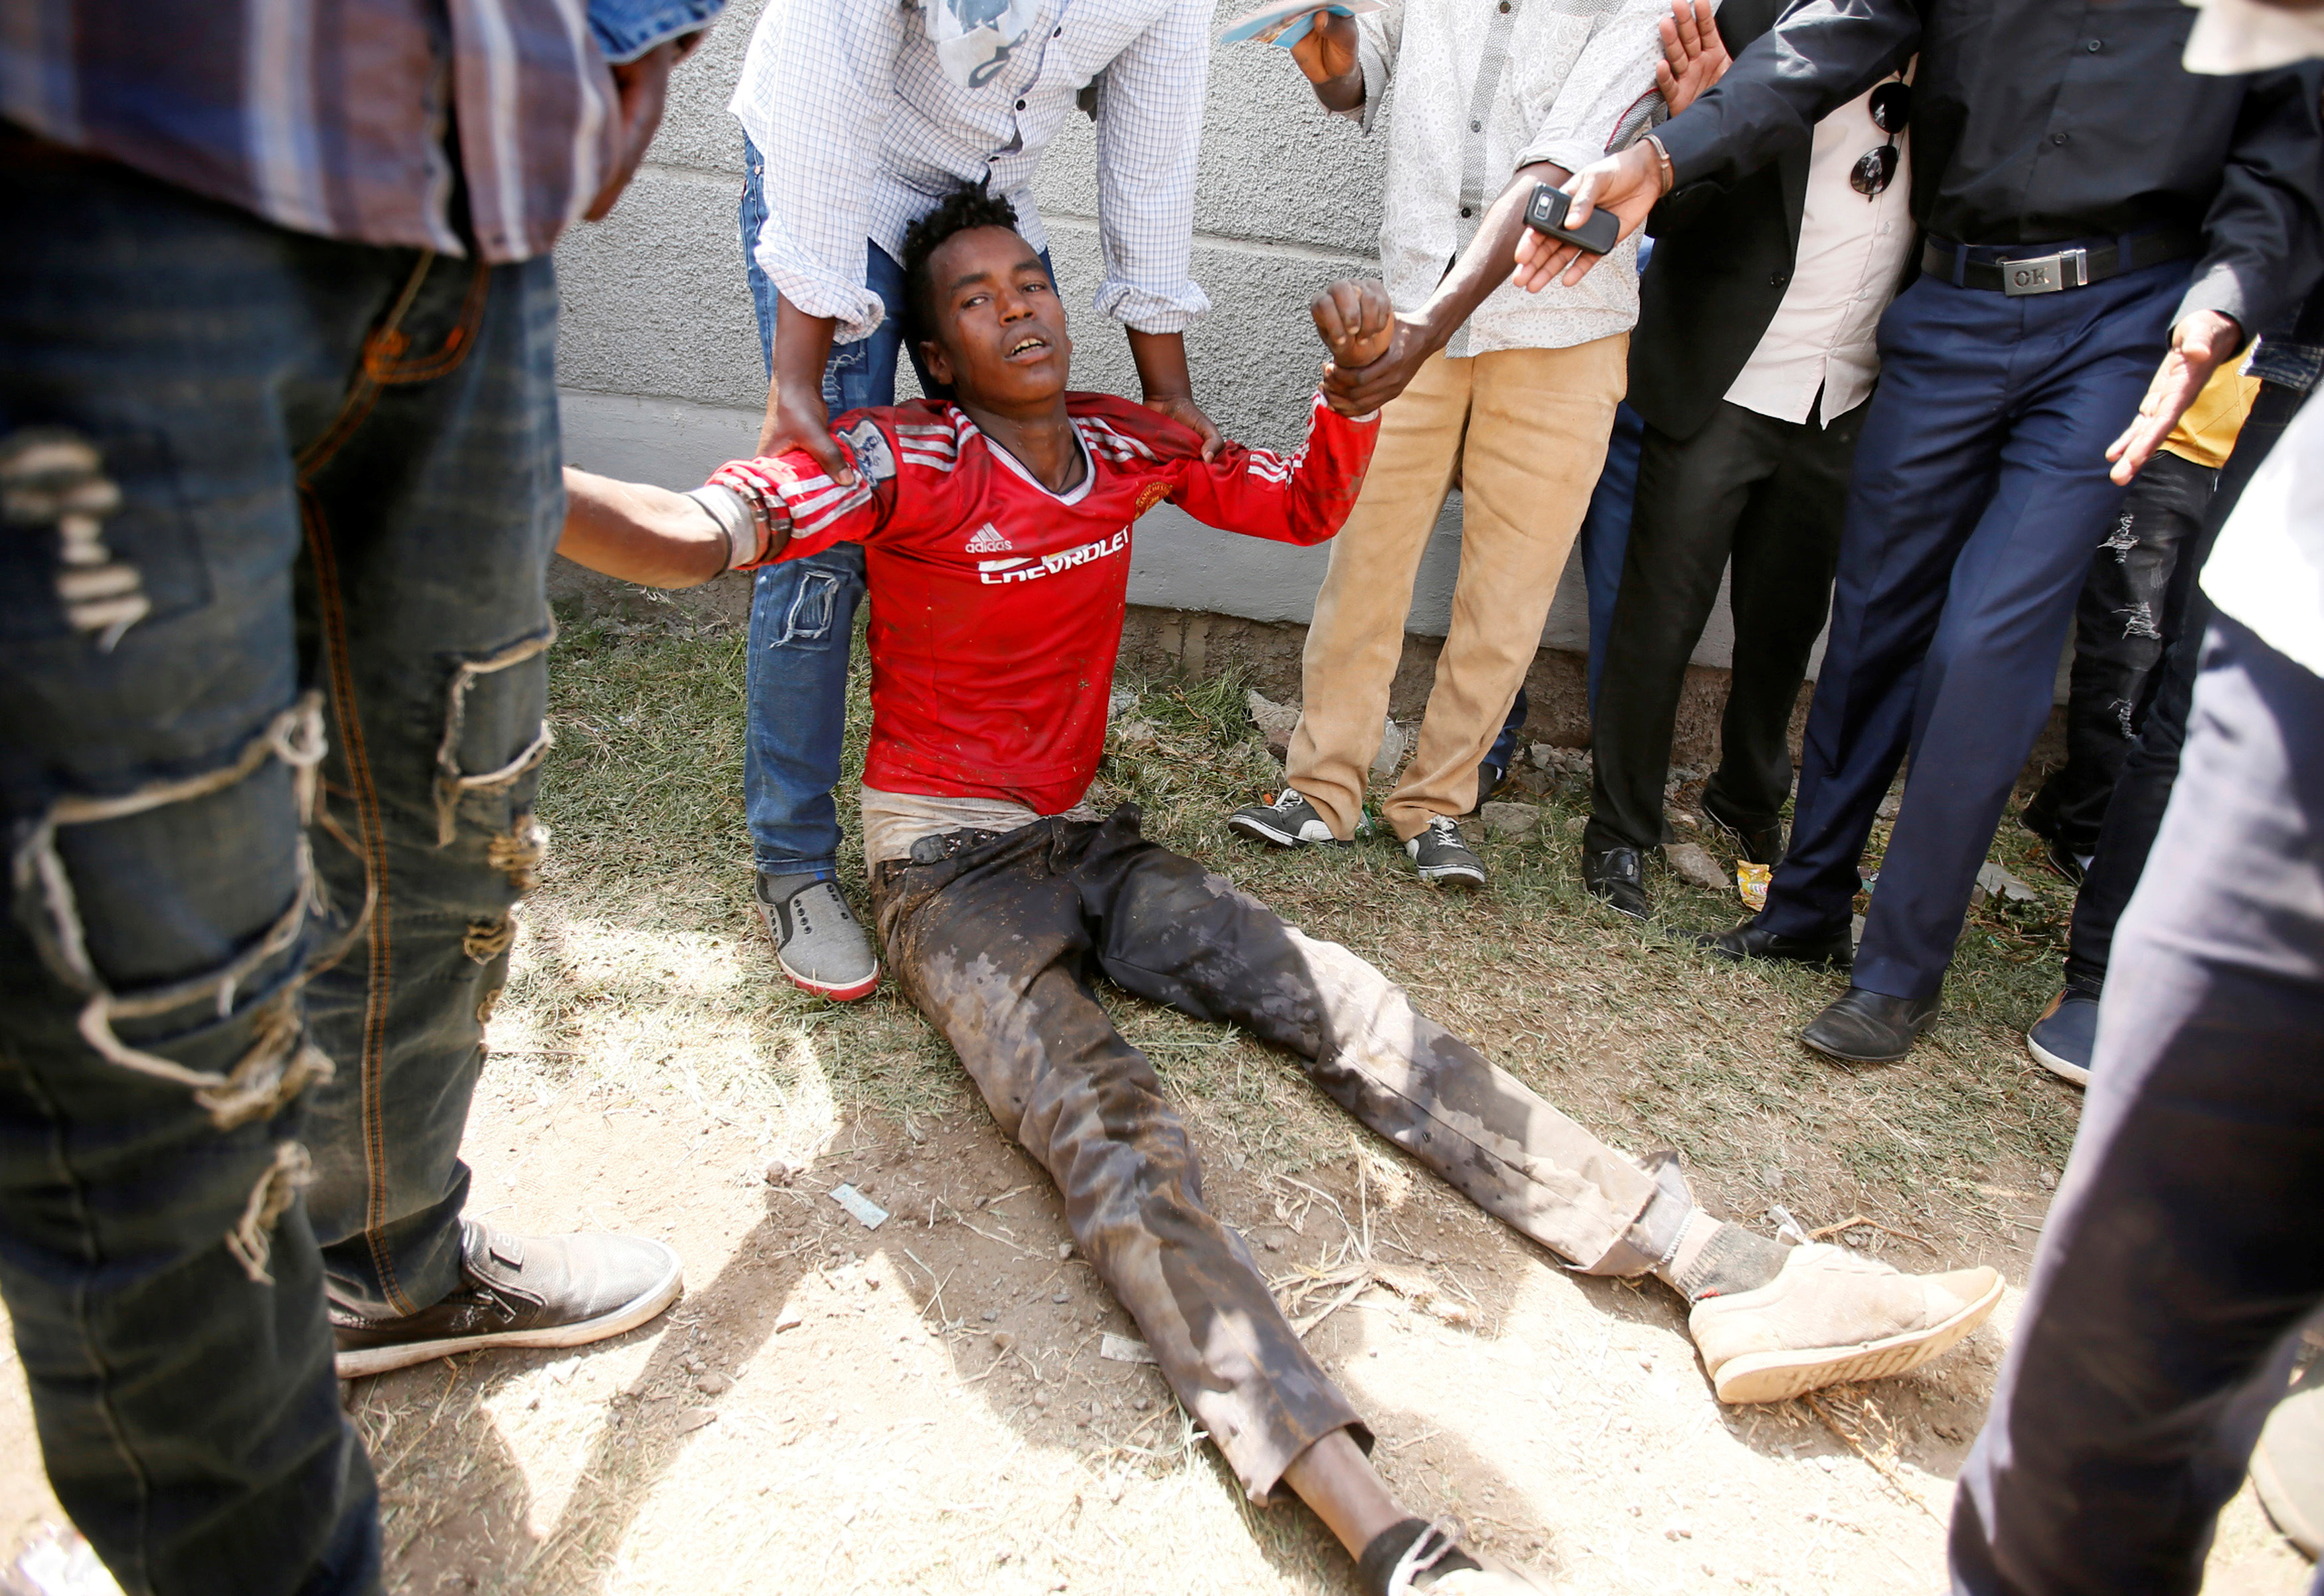 People assist an injured protestor during Irrechaa, the thanks giving festival of the Oromo people in Bishoftu town of Oromia region, Ethiopia, October 2, 2016.